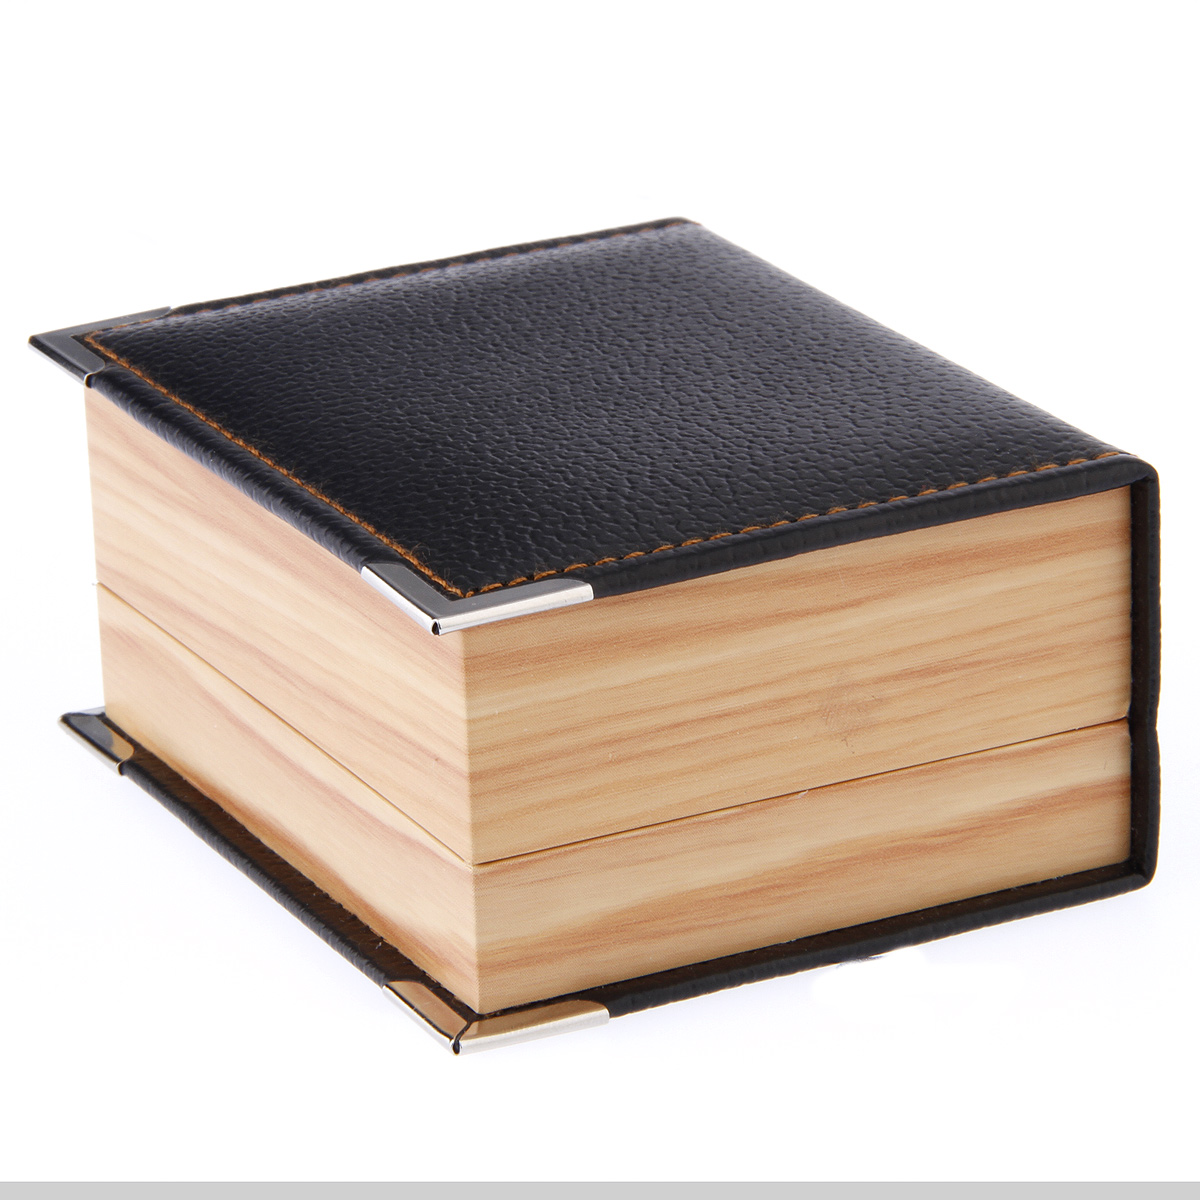 Hotsale New Cufflinks Box 10pcs lot PU Material With Wooden Decoration Quality Cuff Links Gift Box